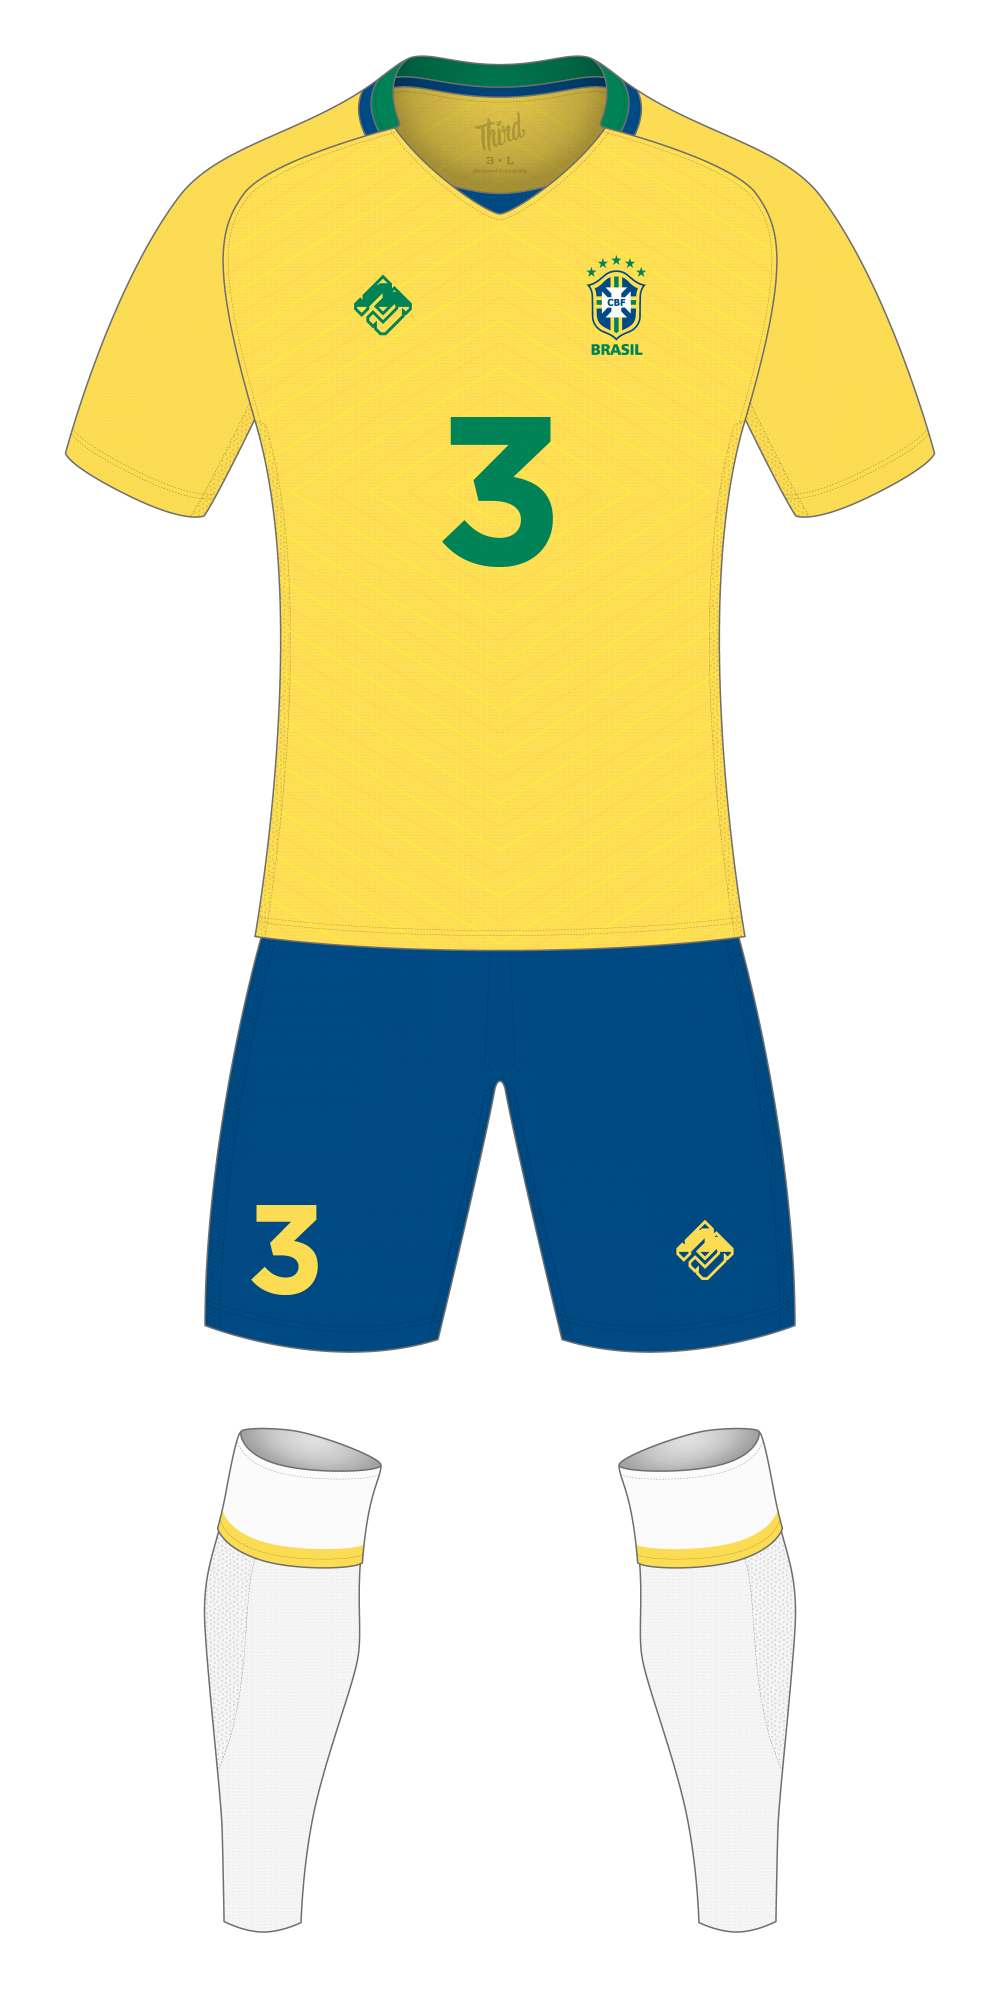 Brazil World Cup 2018 concept